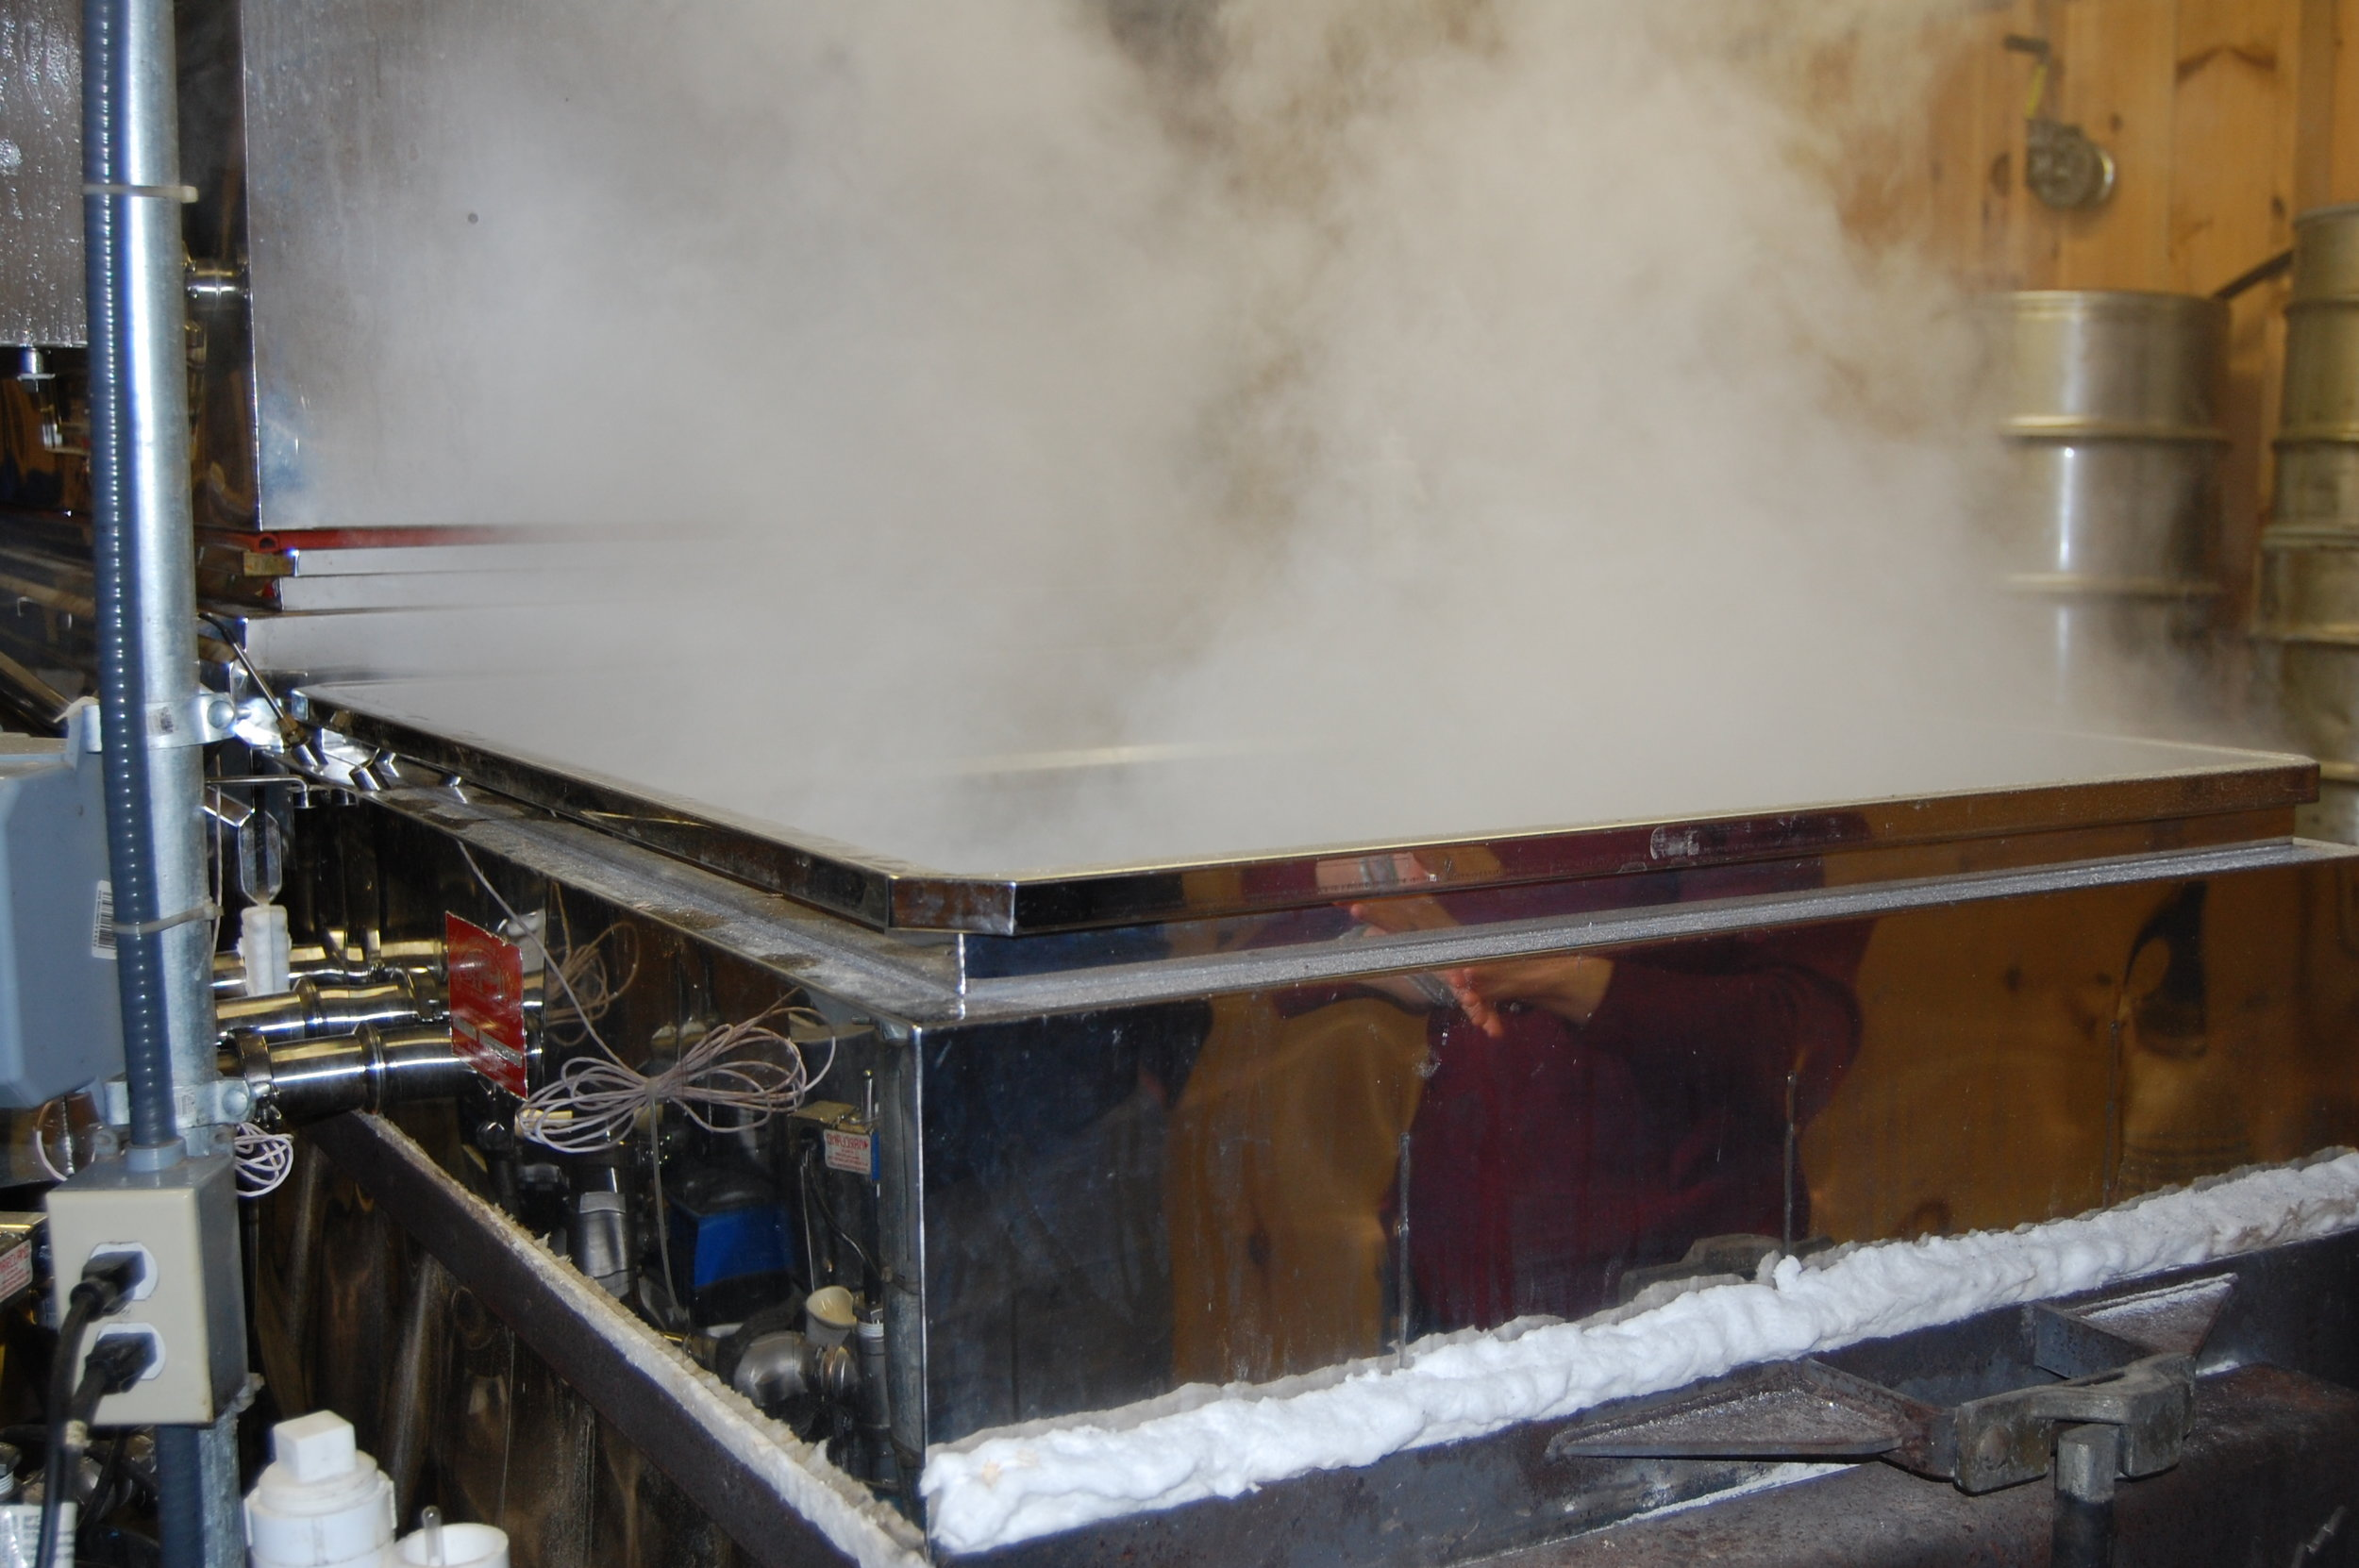 Sweet steam rising from the evaporator in the sugar house